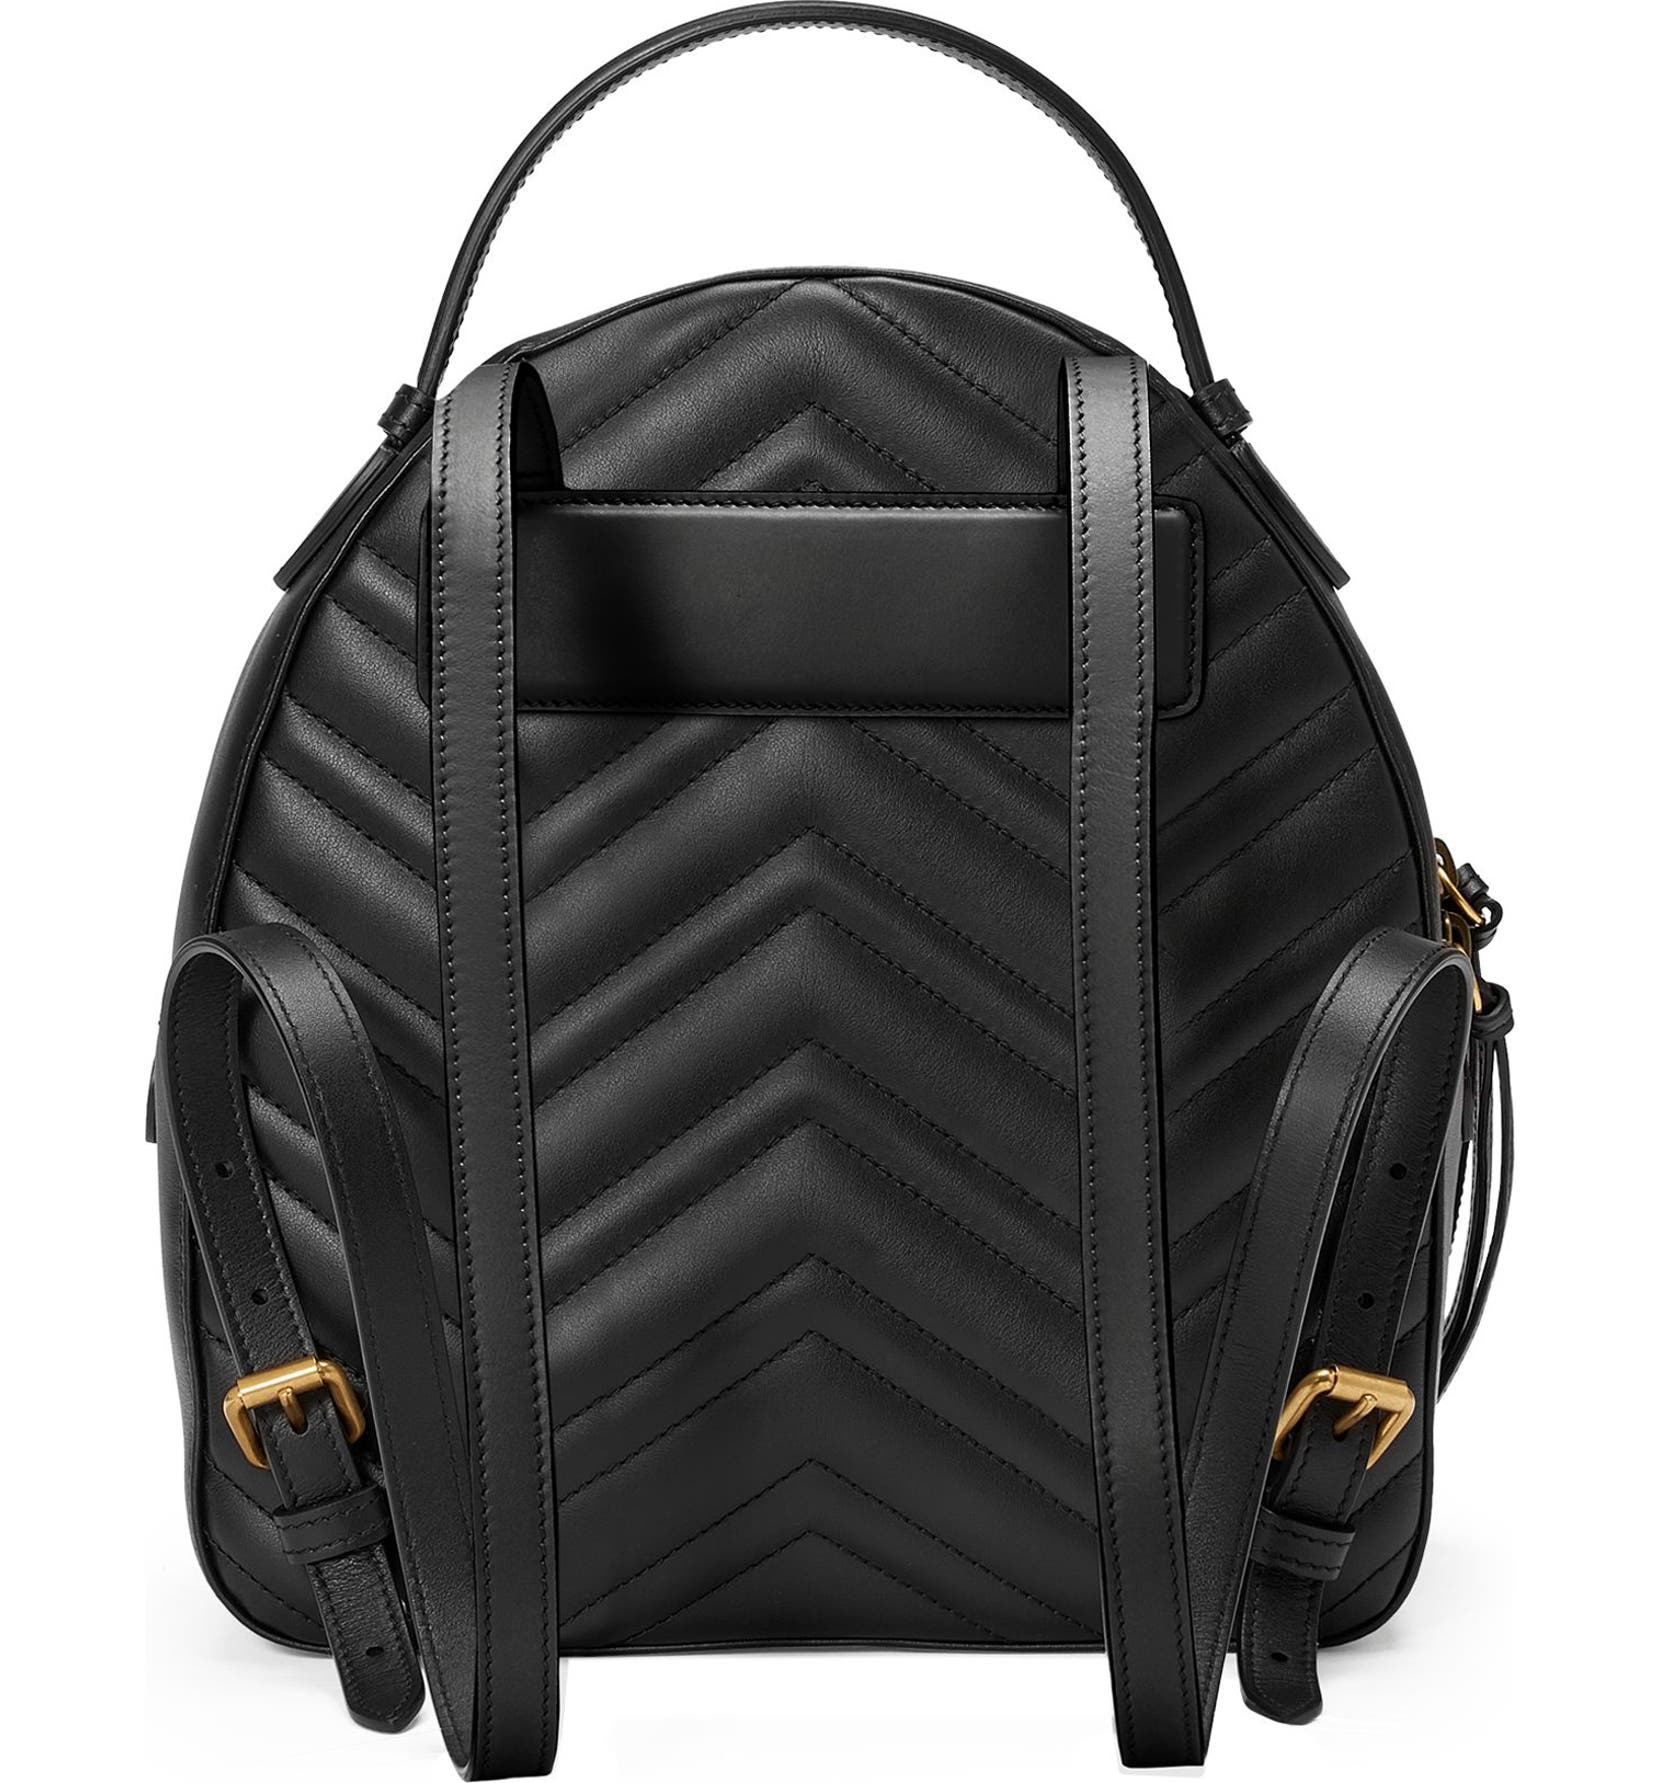 08e74ea95d1f Gucci GG Marmont Matelassé Quilted Leather Backpack | Nordstrom